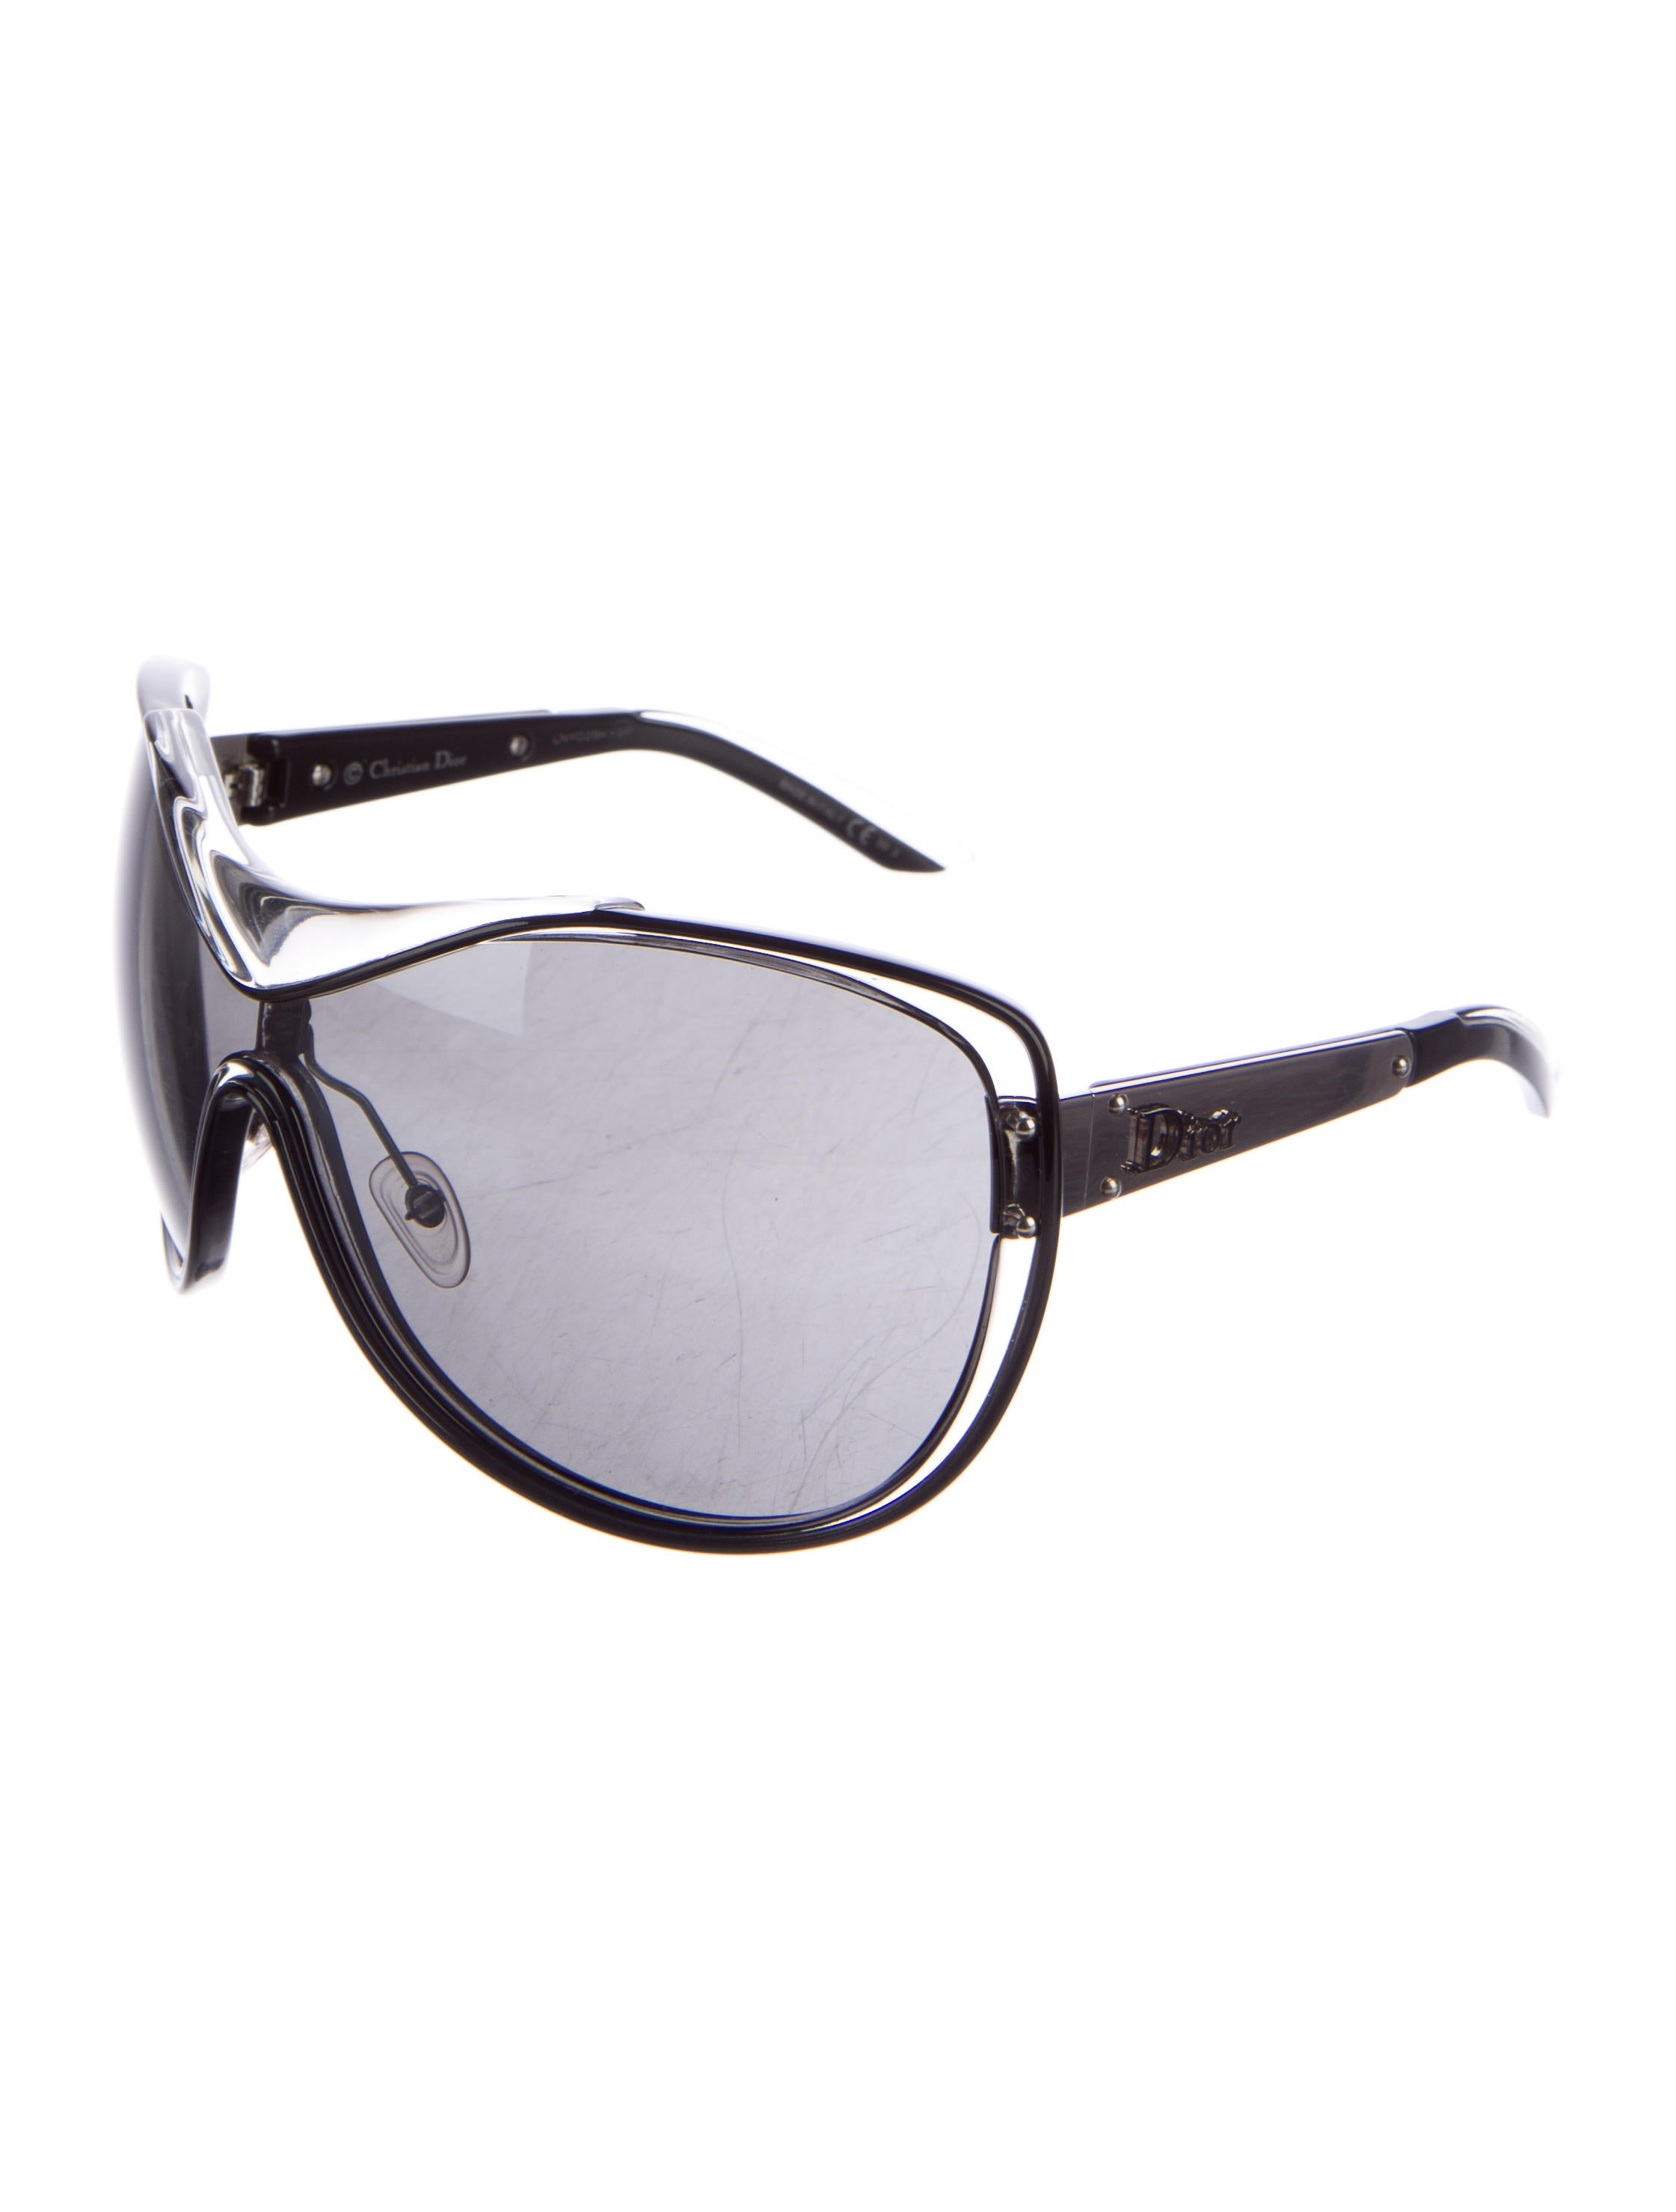 bca387a6d9 Christian Dior Tinted Shield Sunglasses - Accessories - CHR58171